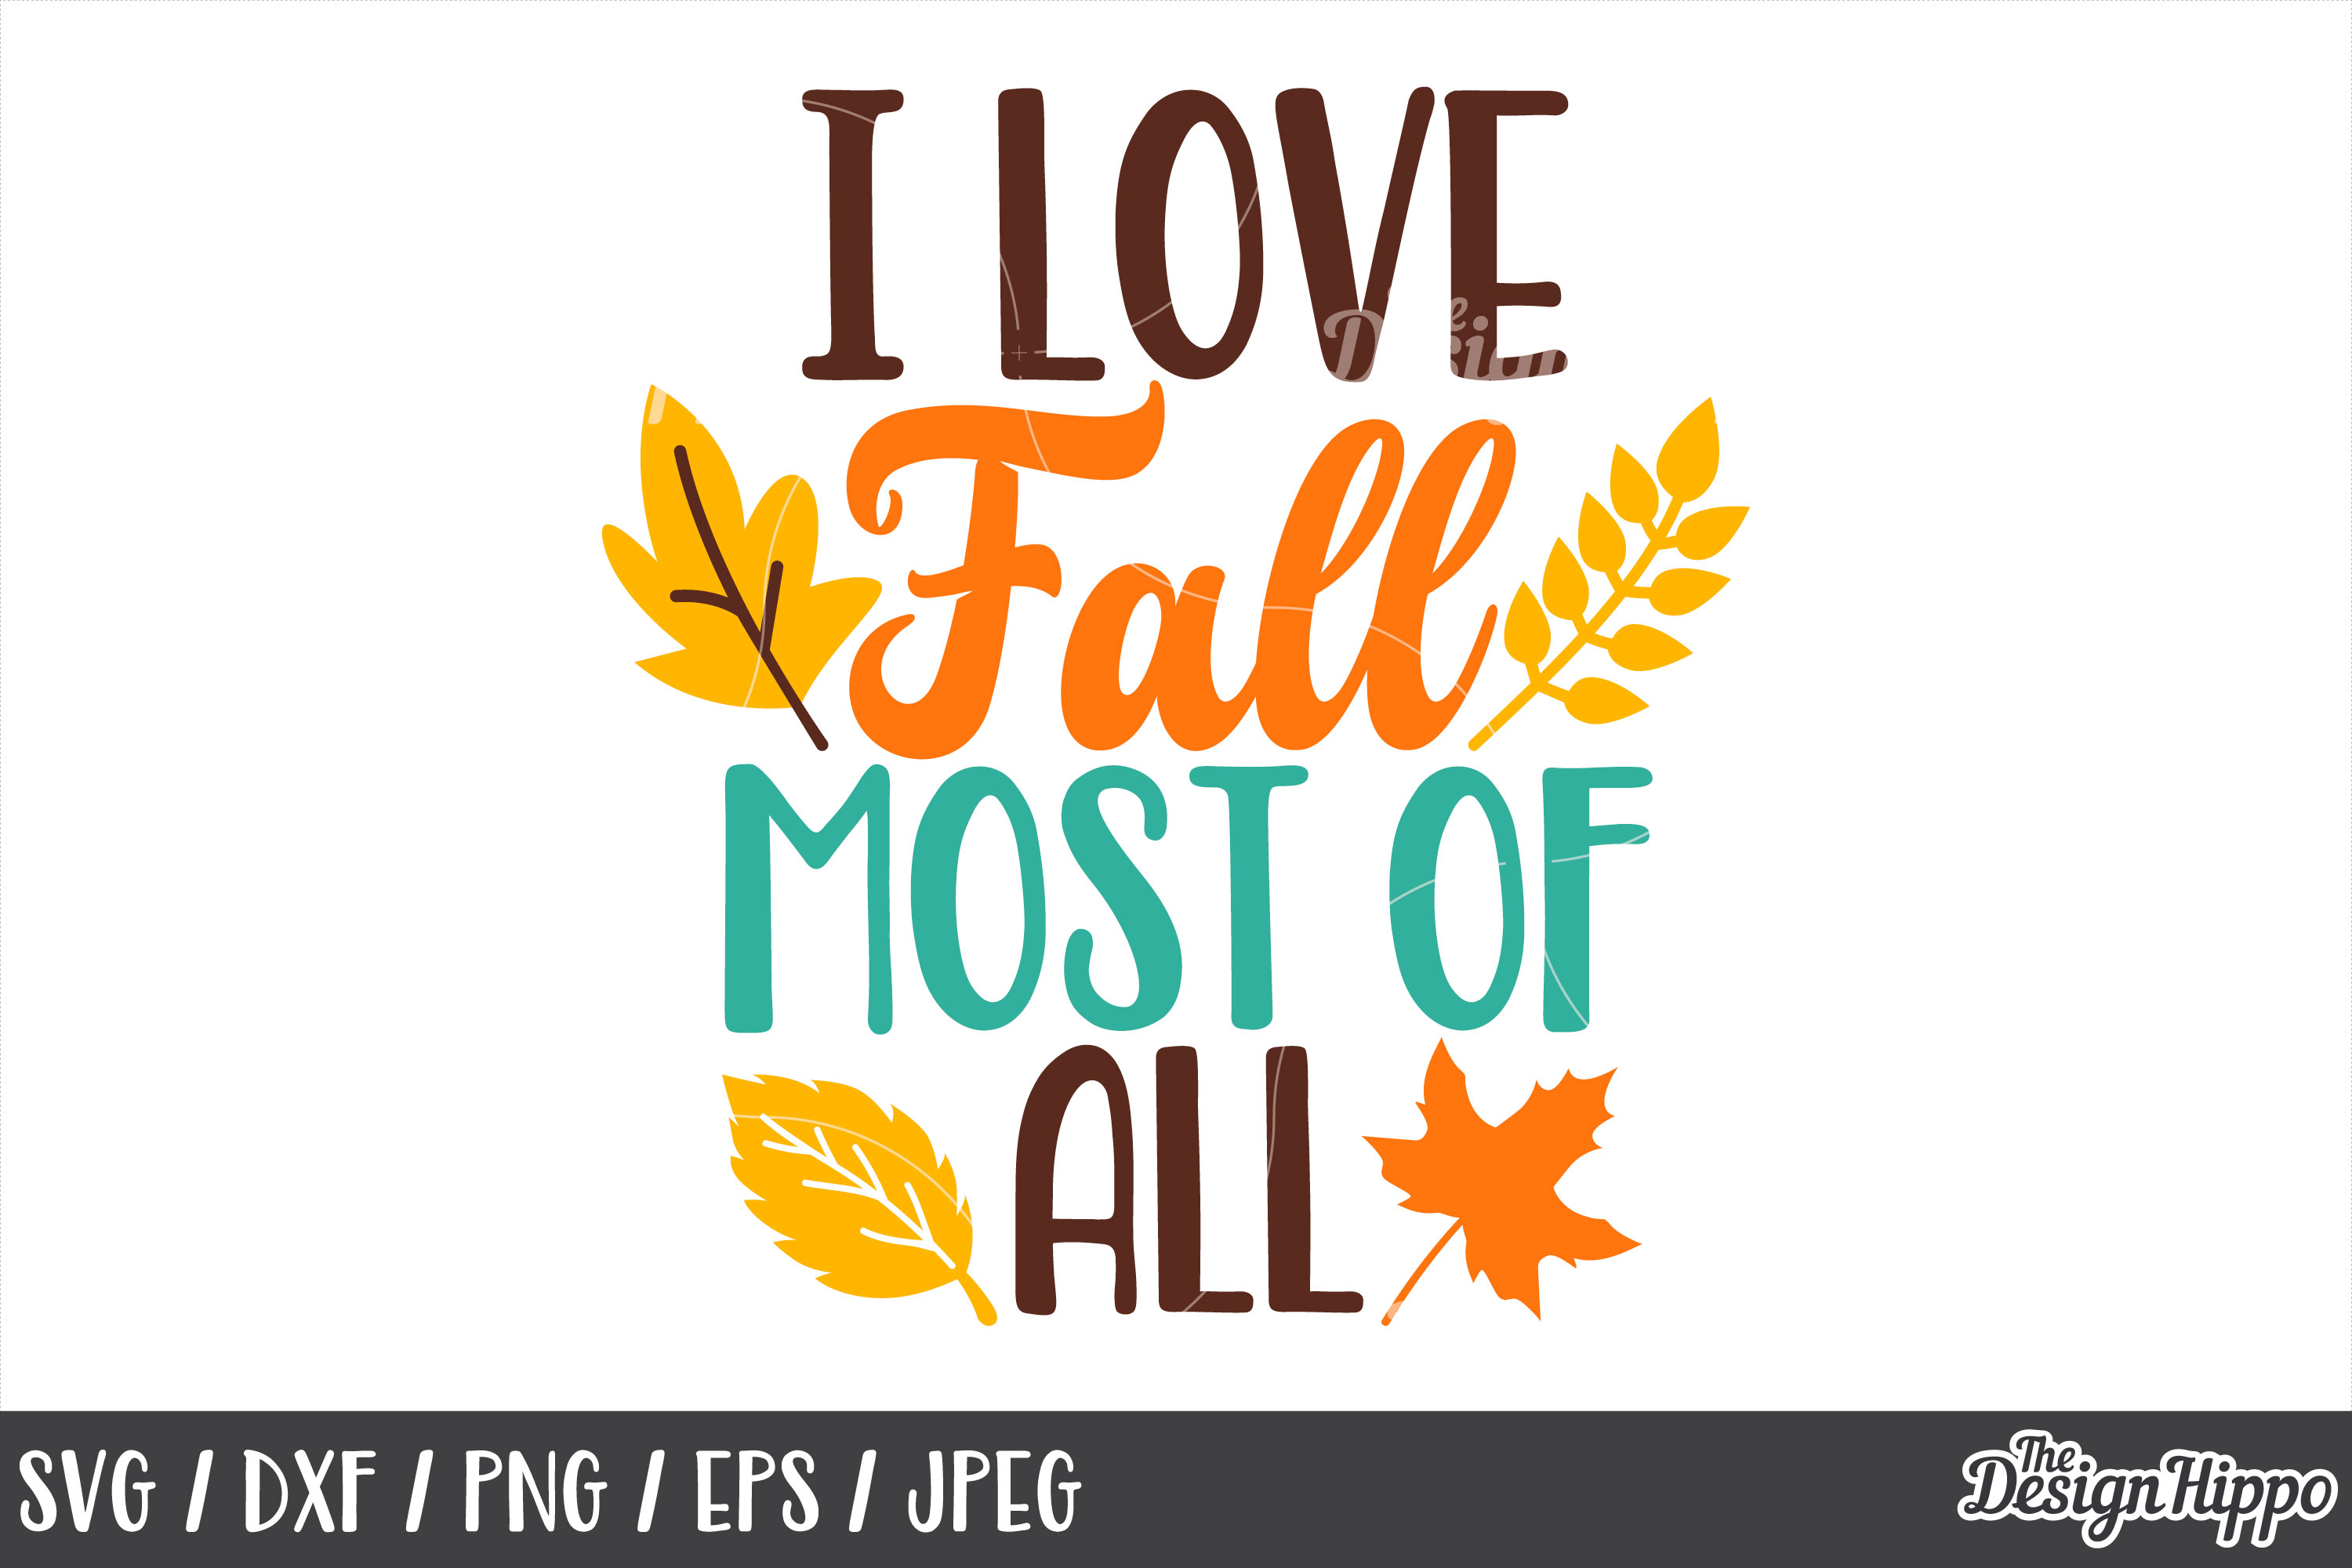 I Love Fall Most Of All SVG, DXF, PNG, JPEG, Cutting Files example image 1